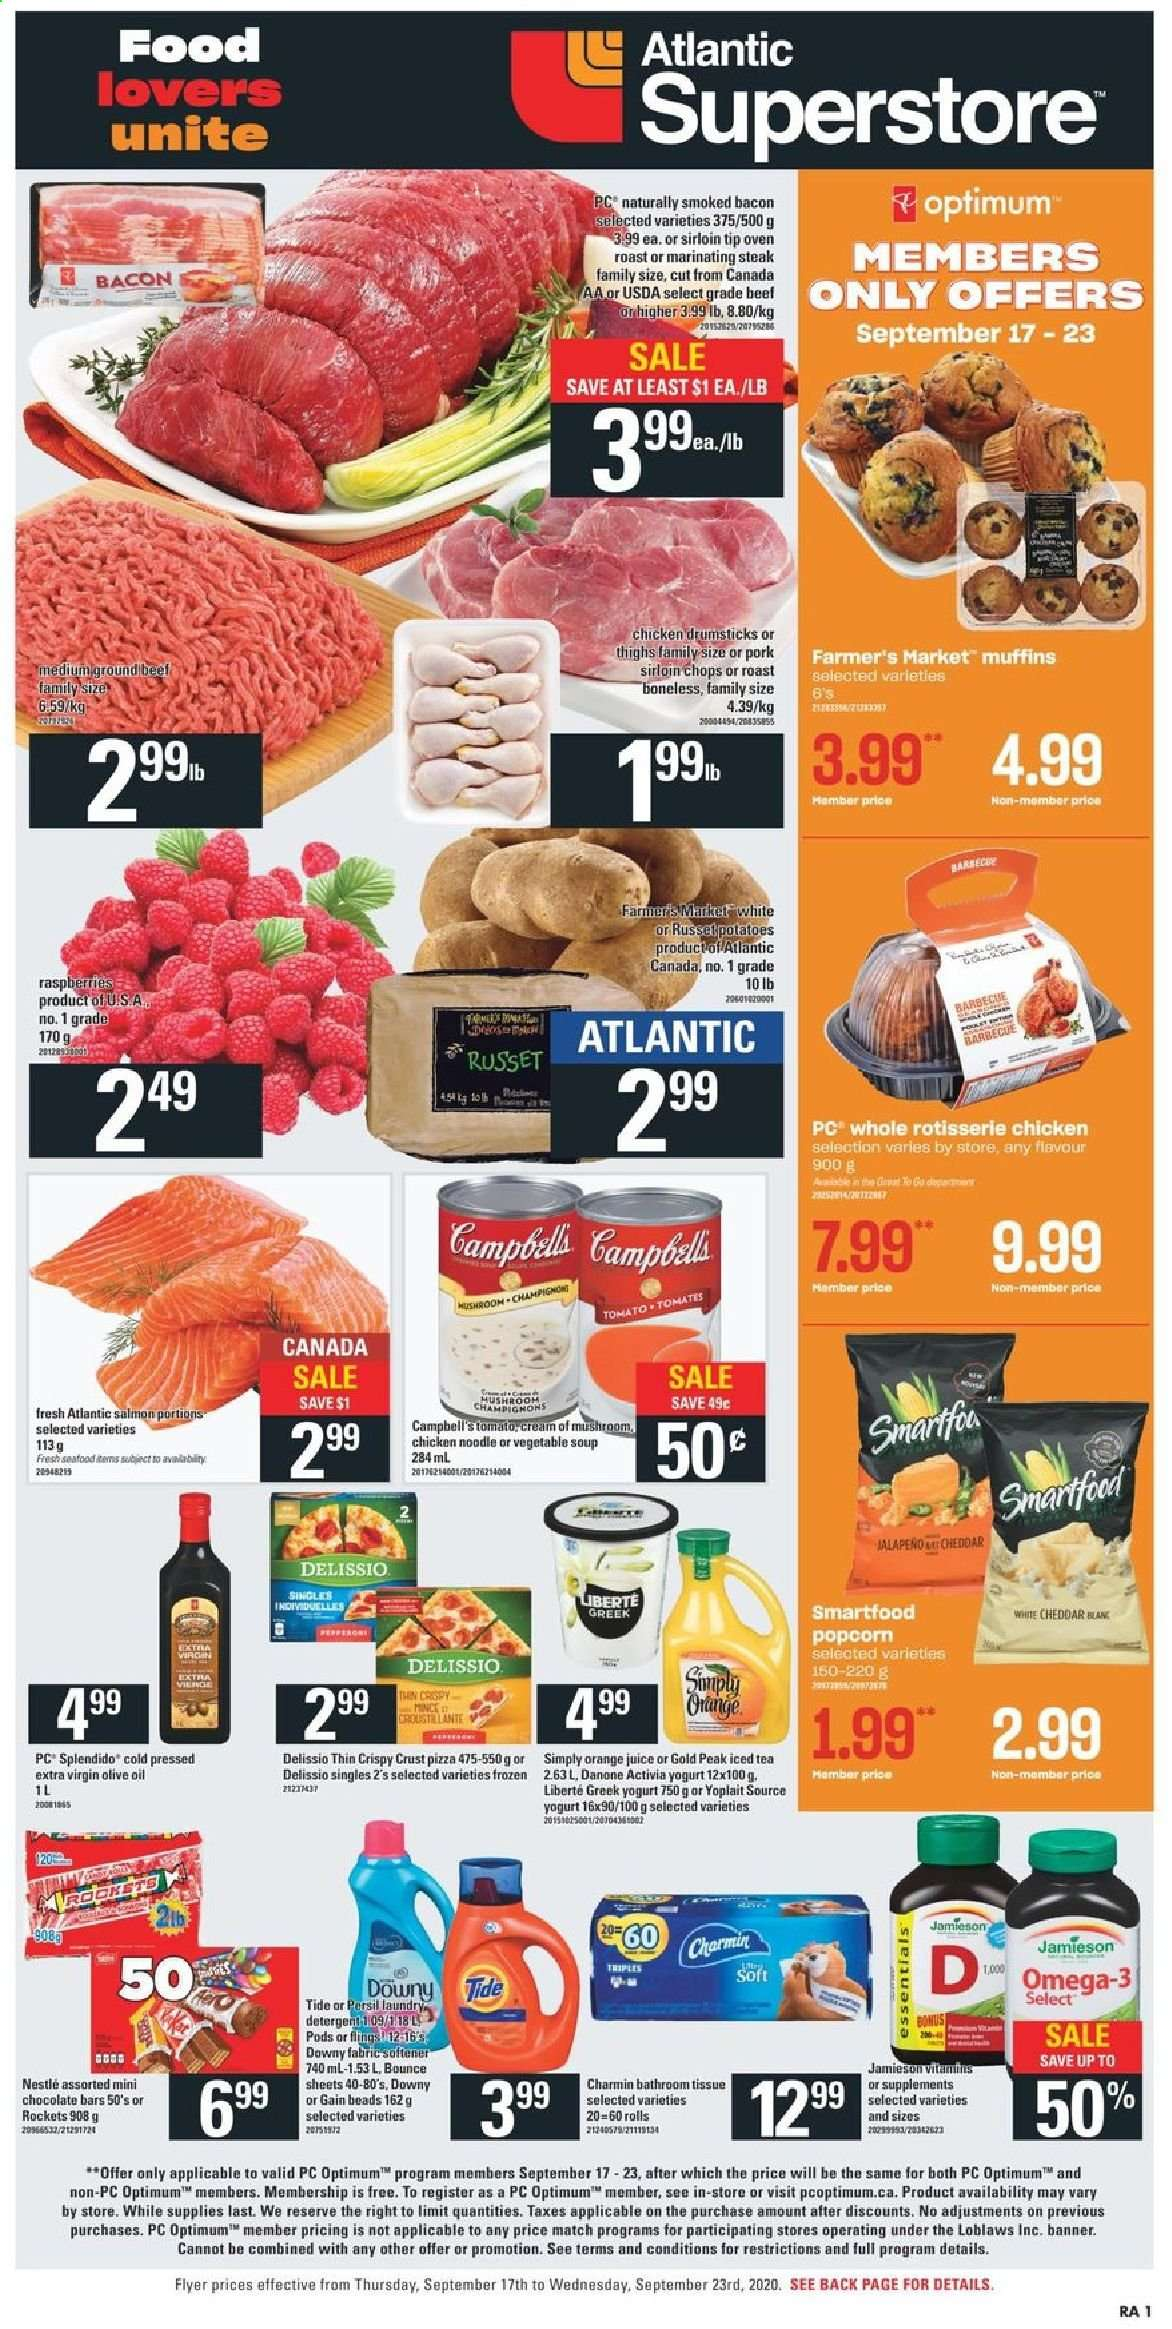 Atlantic Superstore Flyer - September 17, 2020 - September 23, 2020 - Sales products - bacon, beef meat, bounce, campbell's, detergent, downy, extra virgin olive oil, gain, greek yogurt, muffins, nestlé, russet potatoes, salmon, tea, tide, vegetable soup, yogurt, pizza, pork meat, potatoes, cheddar, chicken, chicken drumsticks, persil, noodle, olive oil, omega-3, oven, orange juice, chocolate, steak, juice, soup, vegetable, mushroom, iced tea, softener, danone, tomates, champignon, activia, barbecue, jamieson, orange, essentials, rolls, jalapeno, laundry detergent, roast, tomato. Page 1.